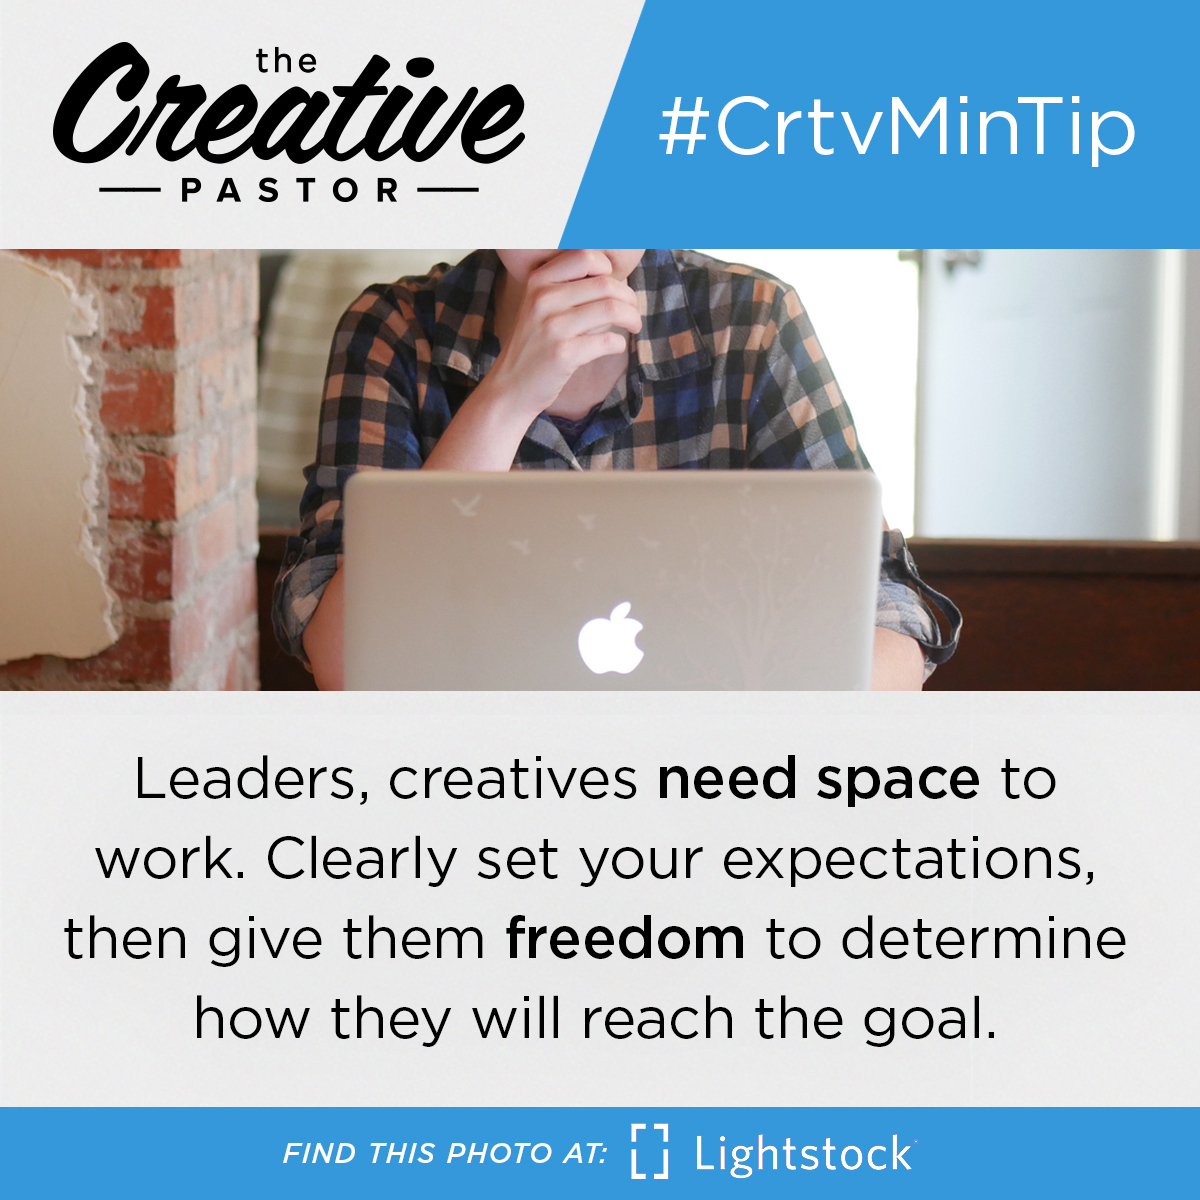 #CrtvMinTip: Leaders, creatives need space to work. Clearly set your expectations, then give them freedom to determine how they will reach the goal.